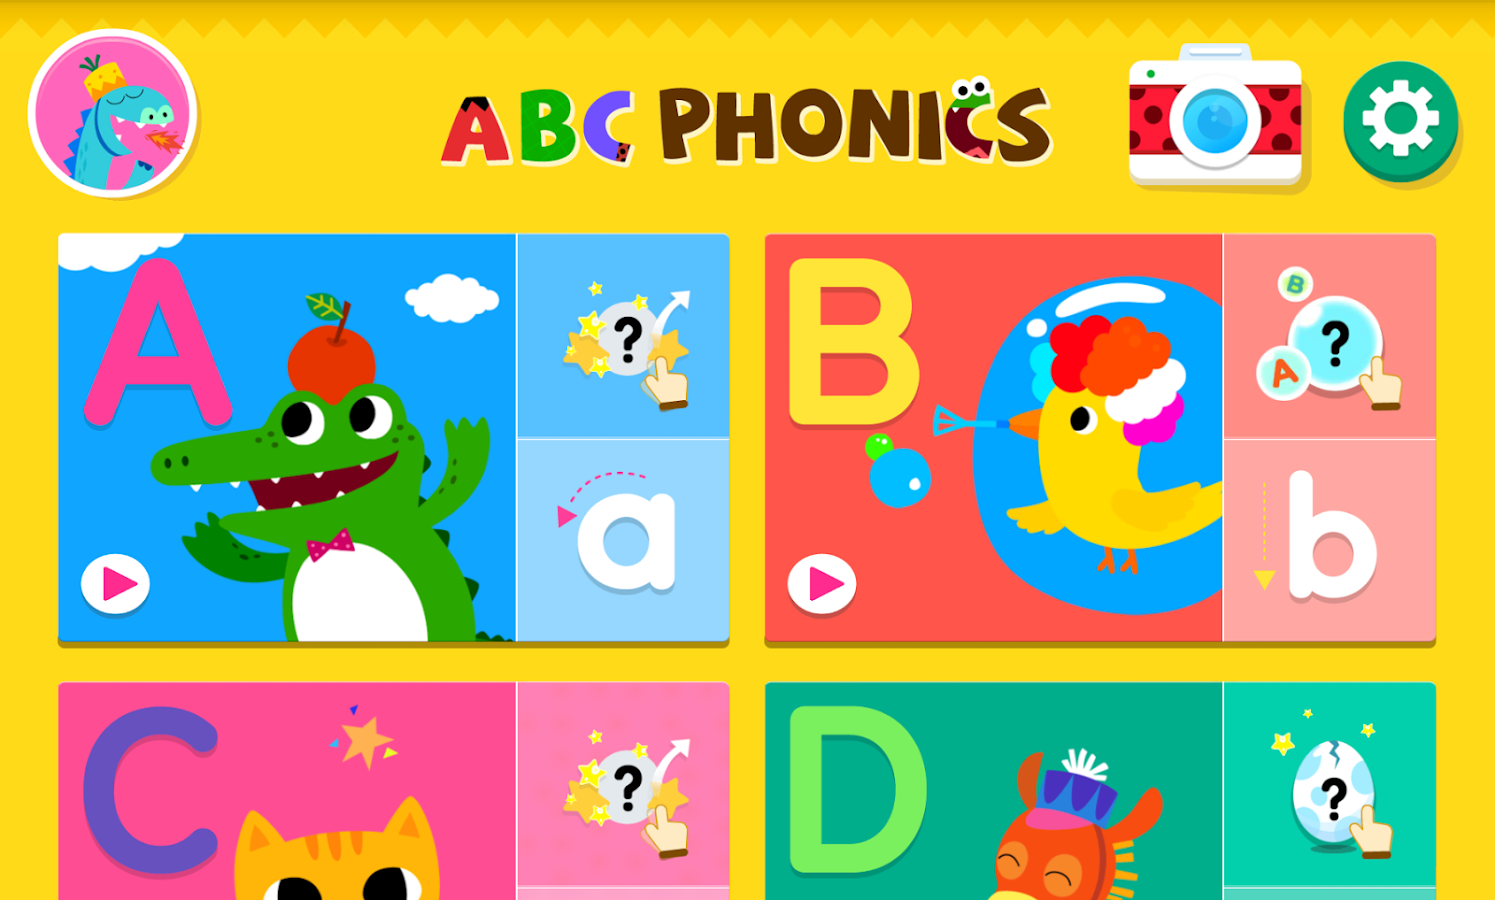 ABC Phonics Screenshot 5